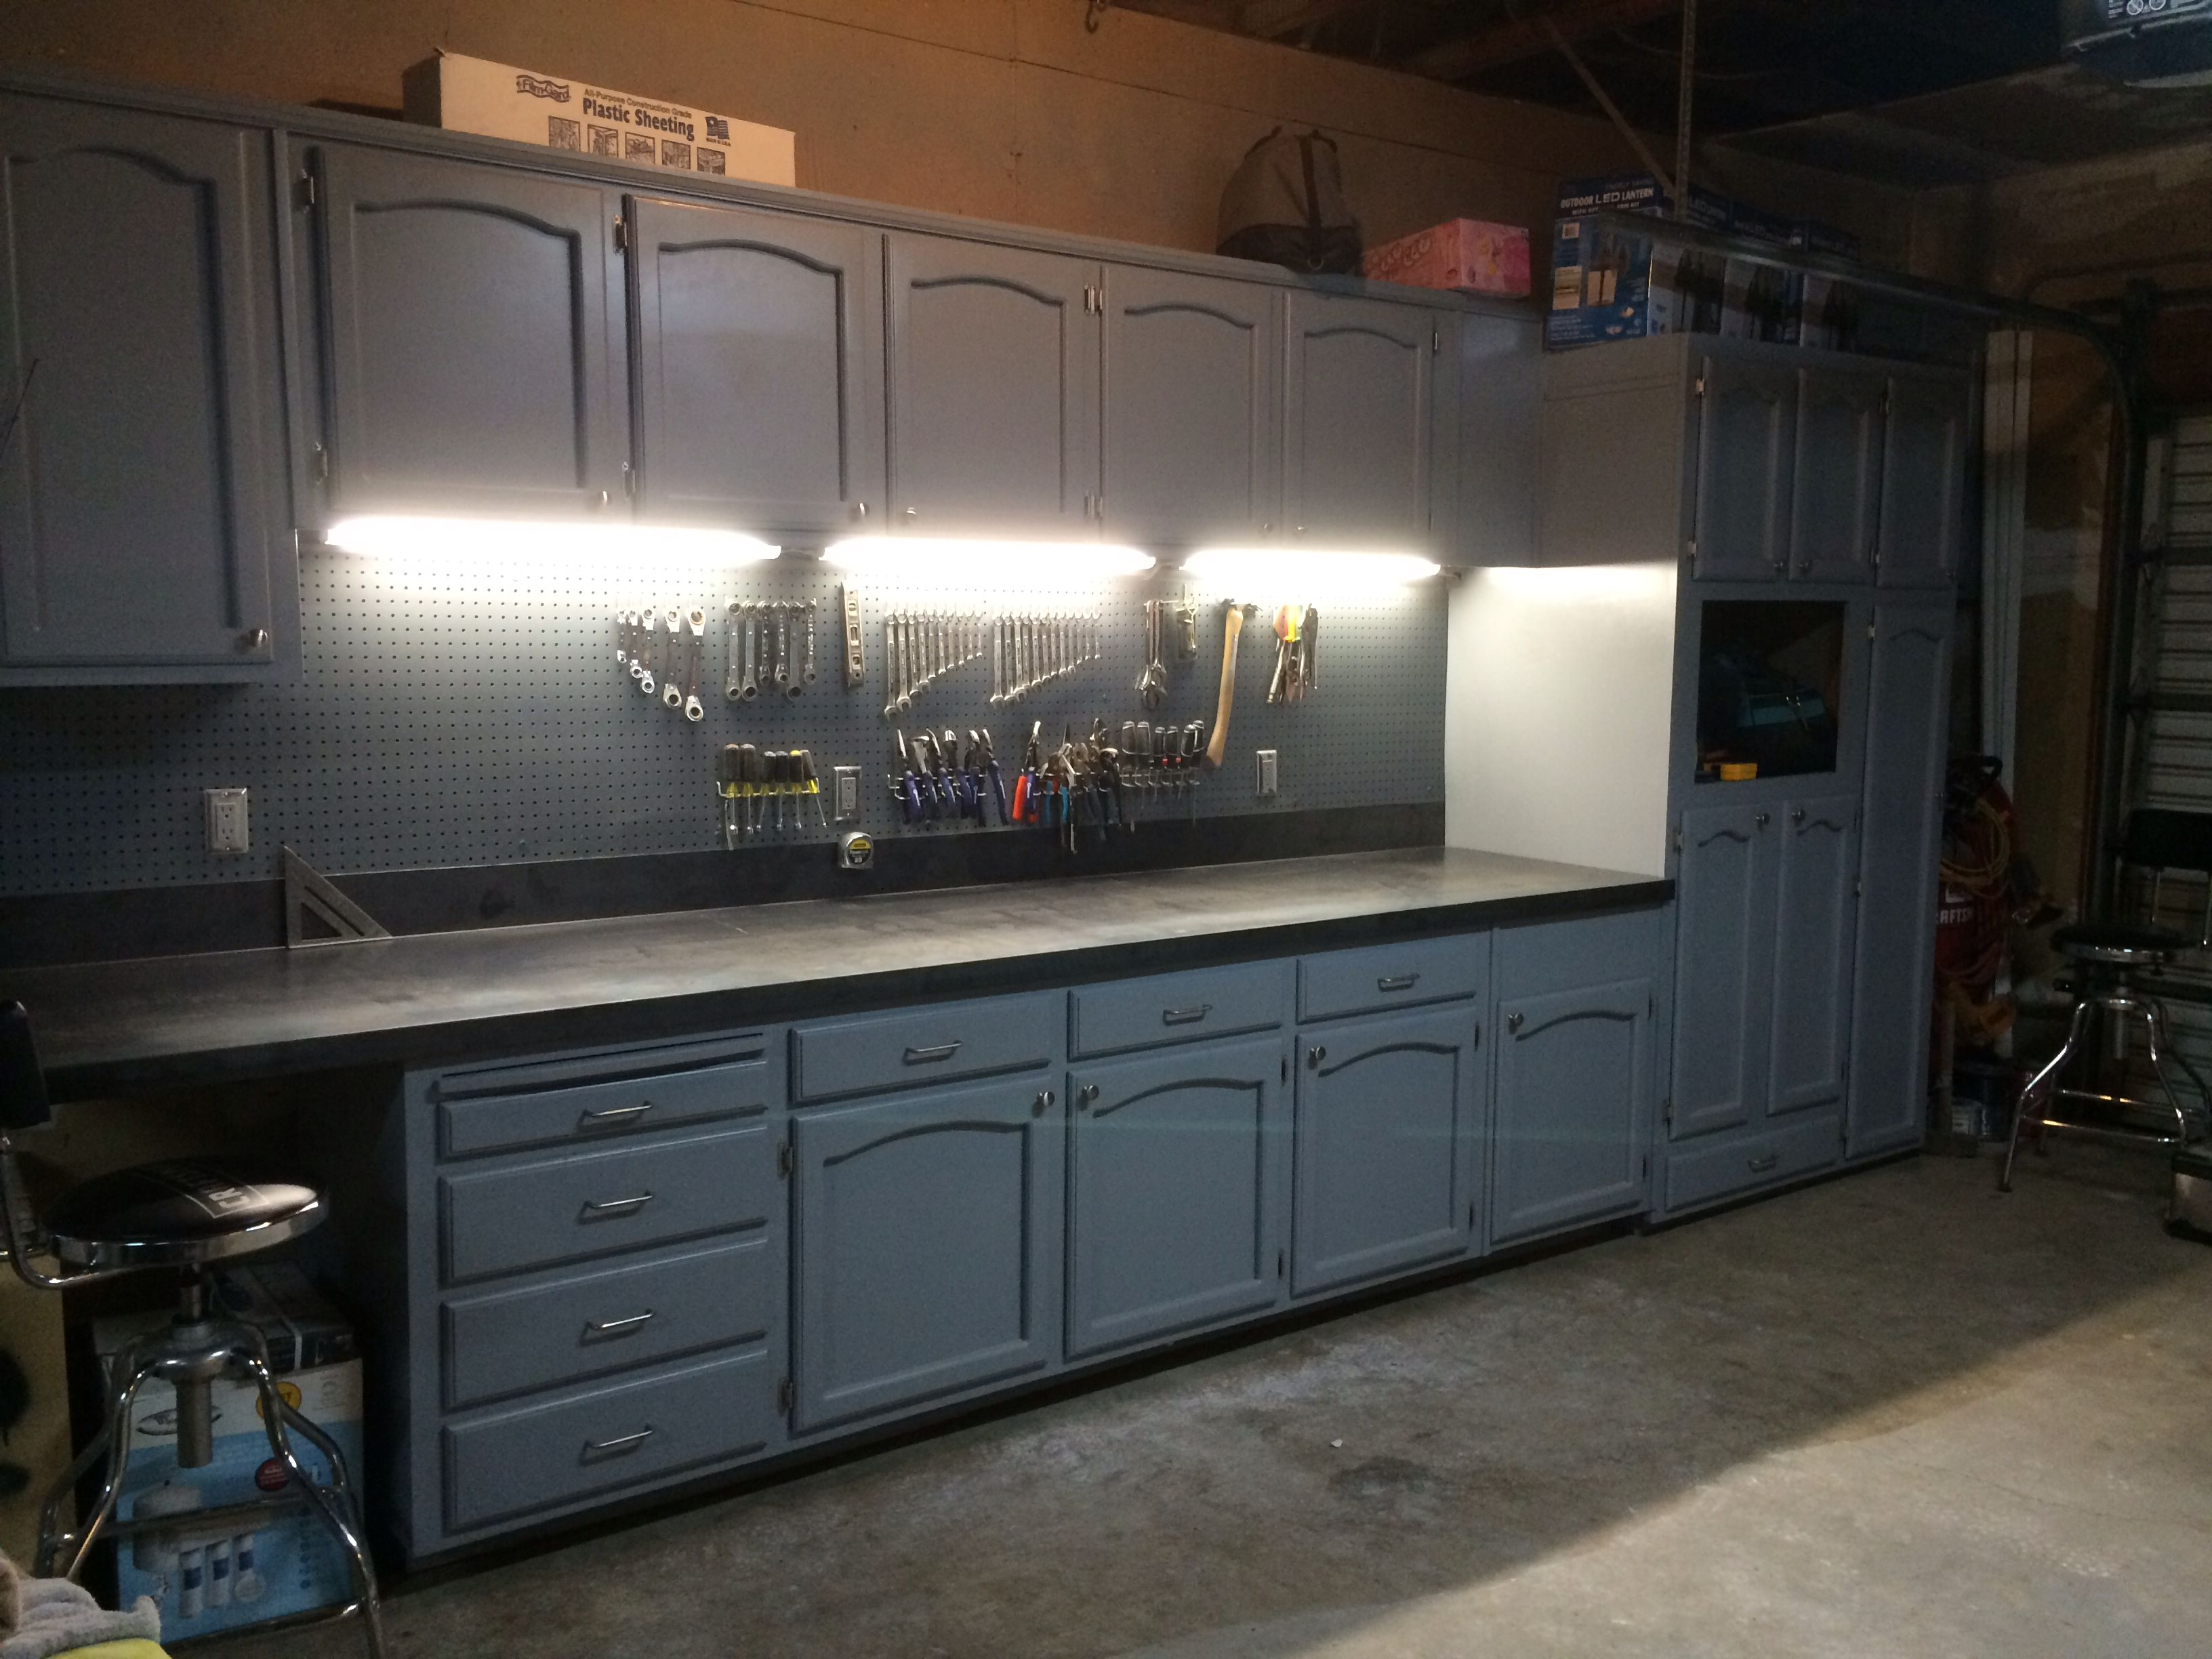 Refurbished kitchen cabinets for the ultimate work bench ...